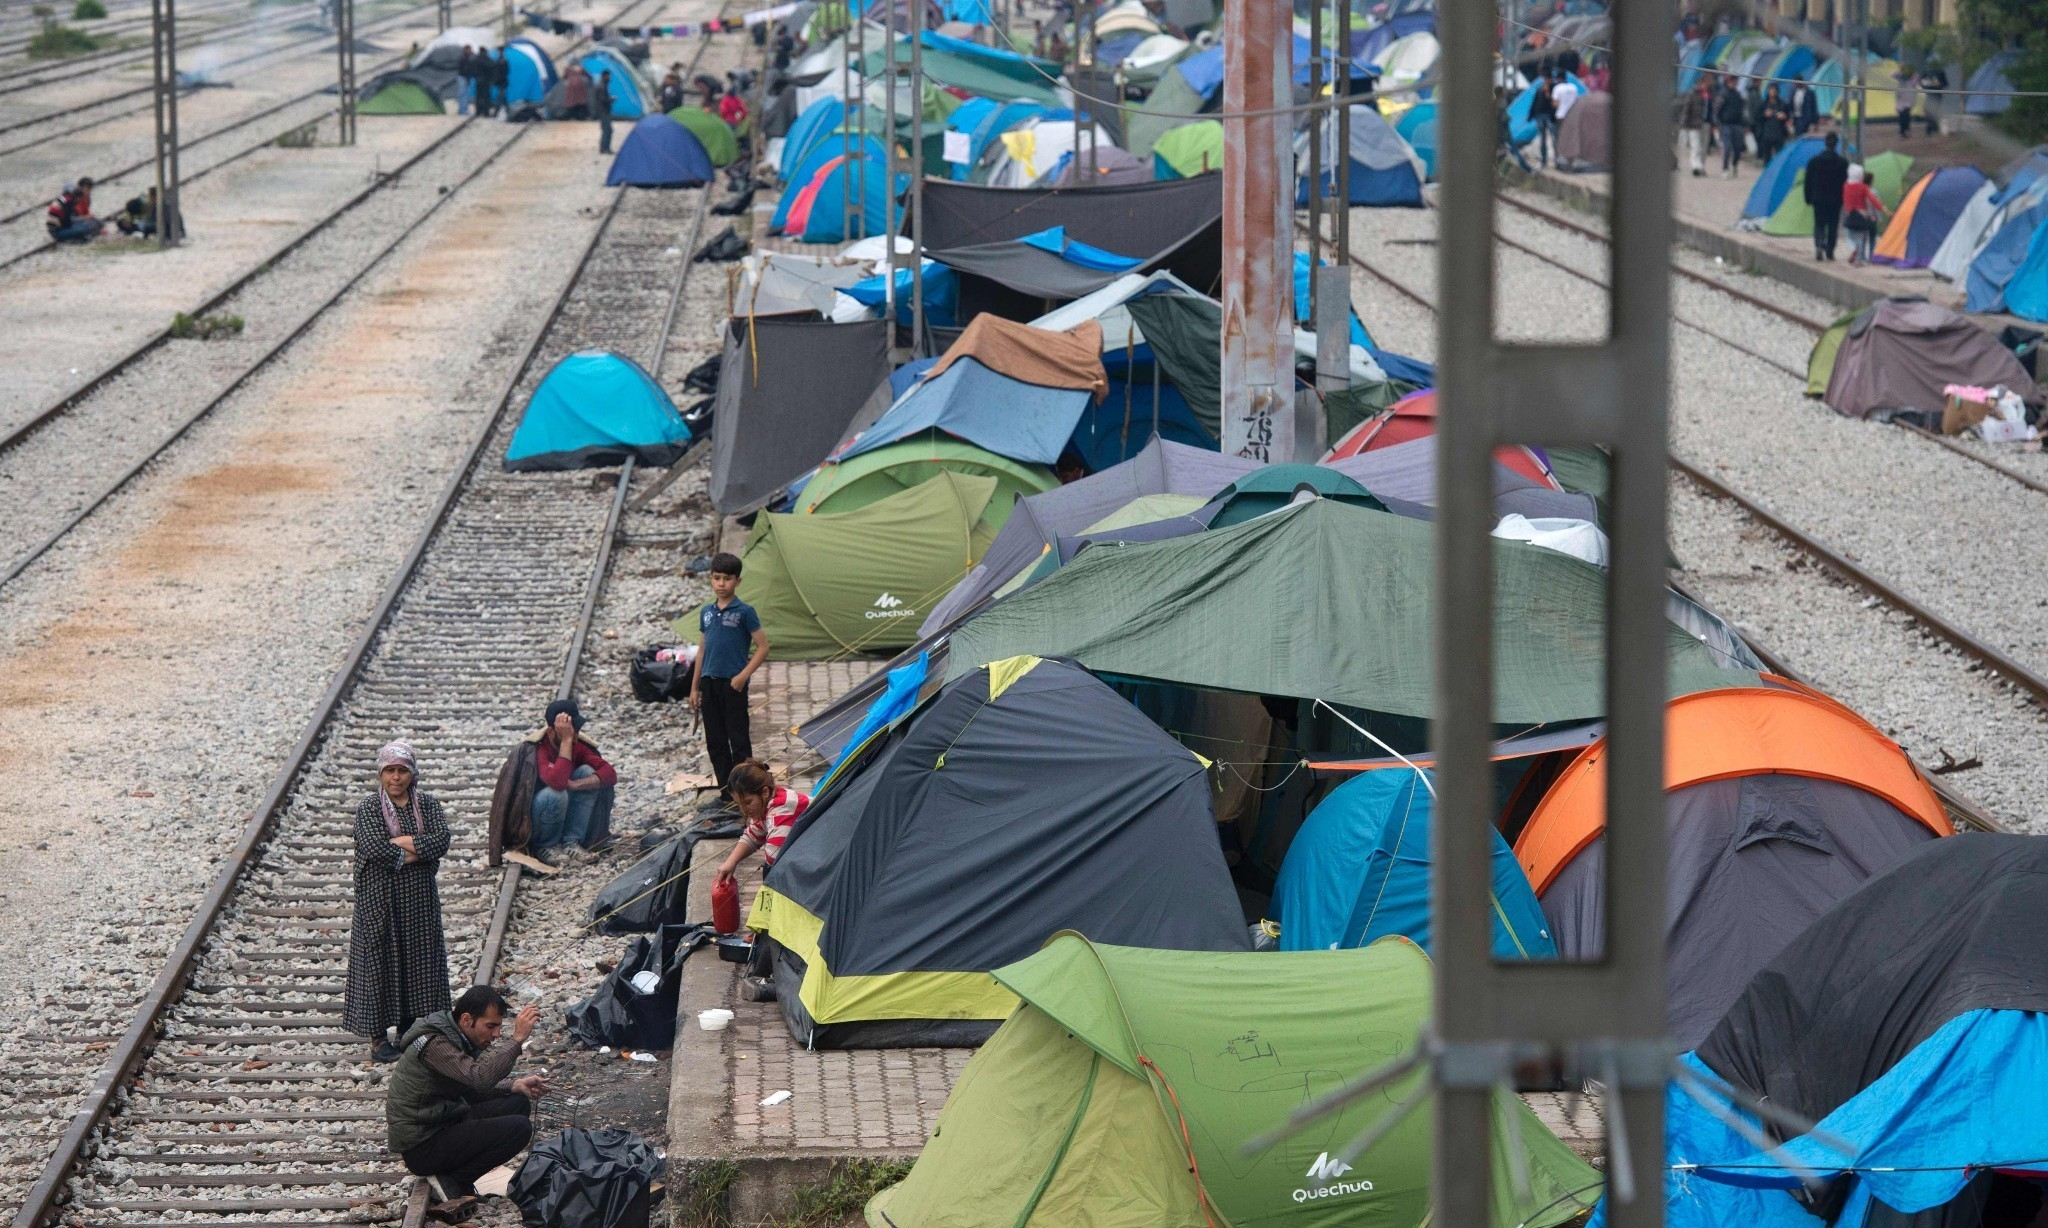 EU refugee crisis: closed-door countries could be asked to help cover costs